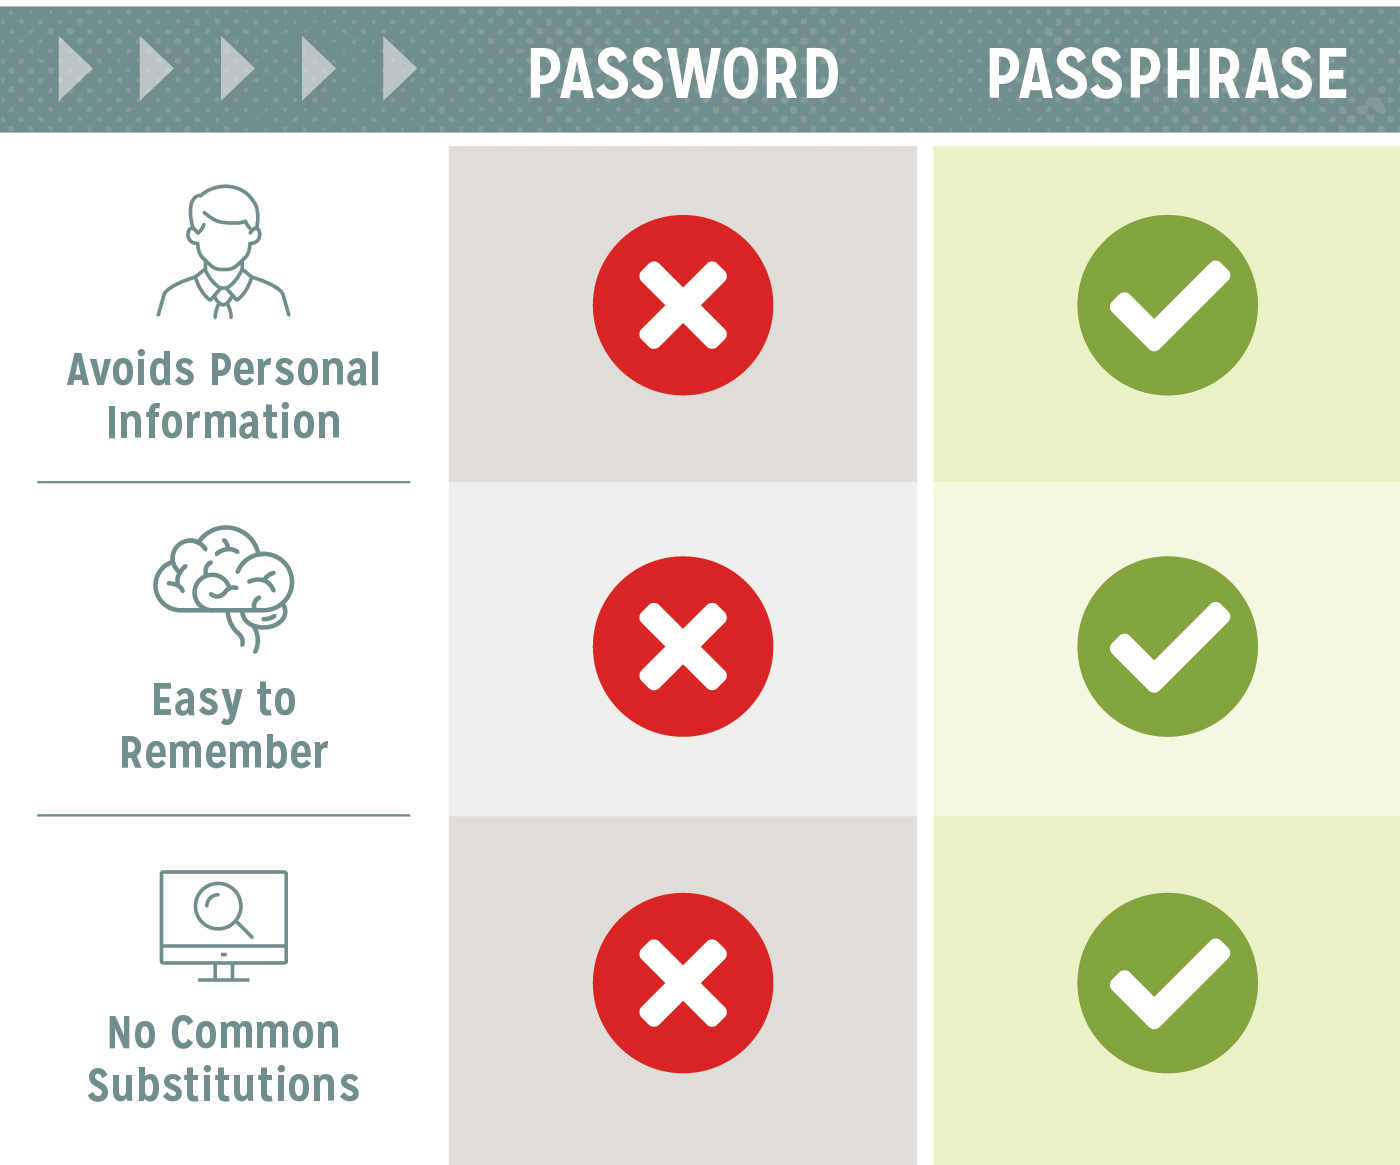 creating-strong-password-vs-passphrase-2